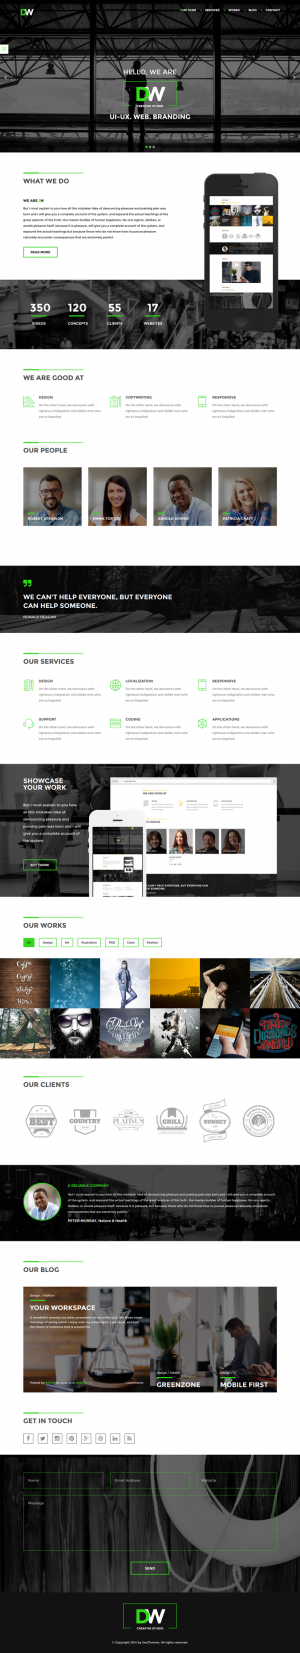 DW is a modern HTML5 theme for your agency, studio or design company. You can customize it very ...